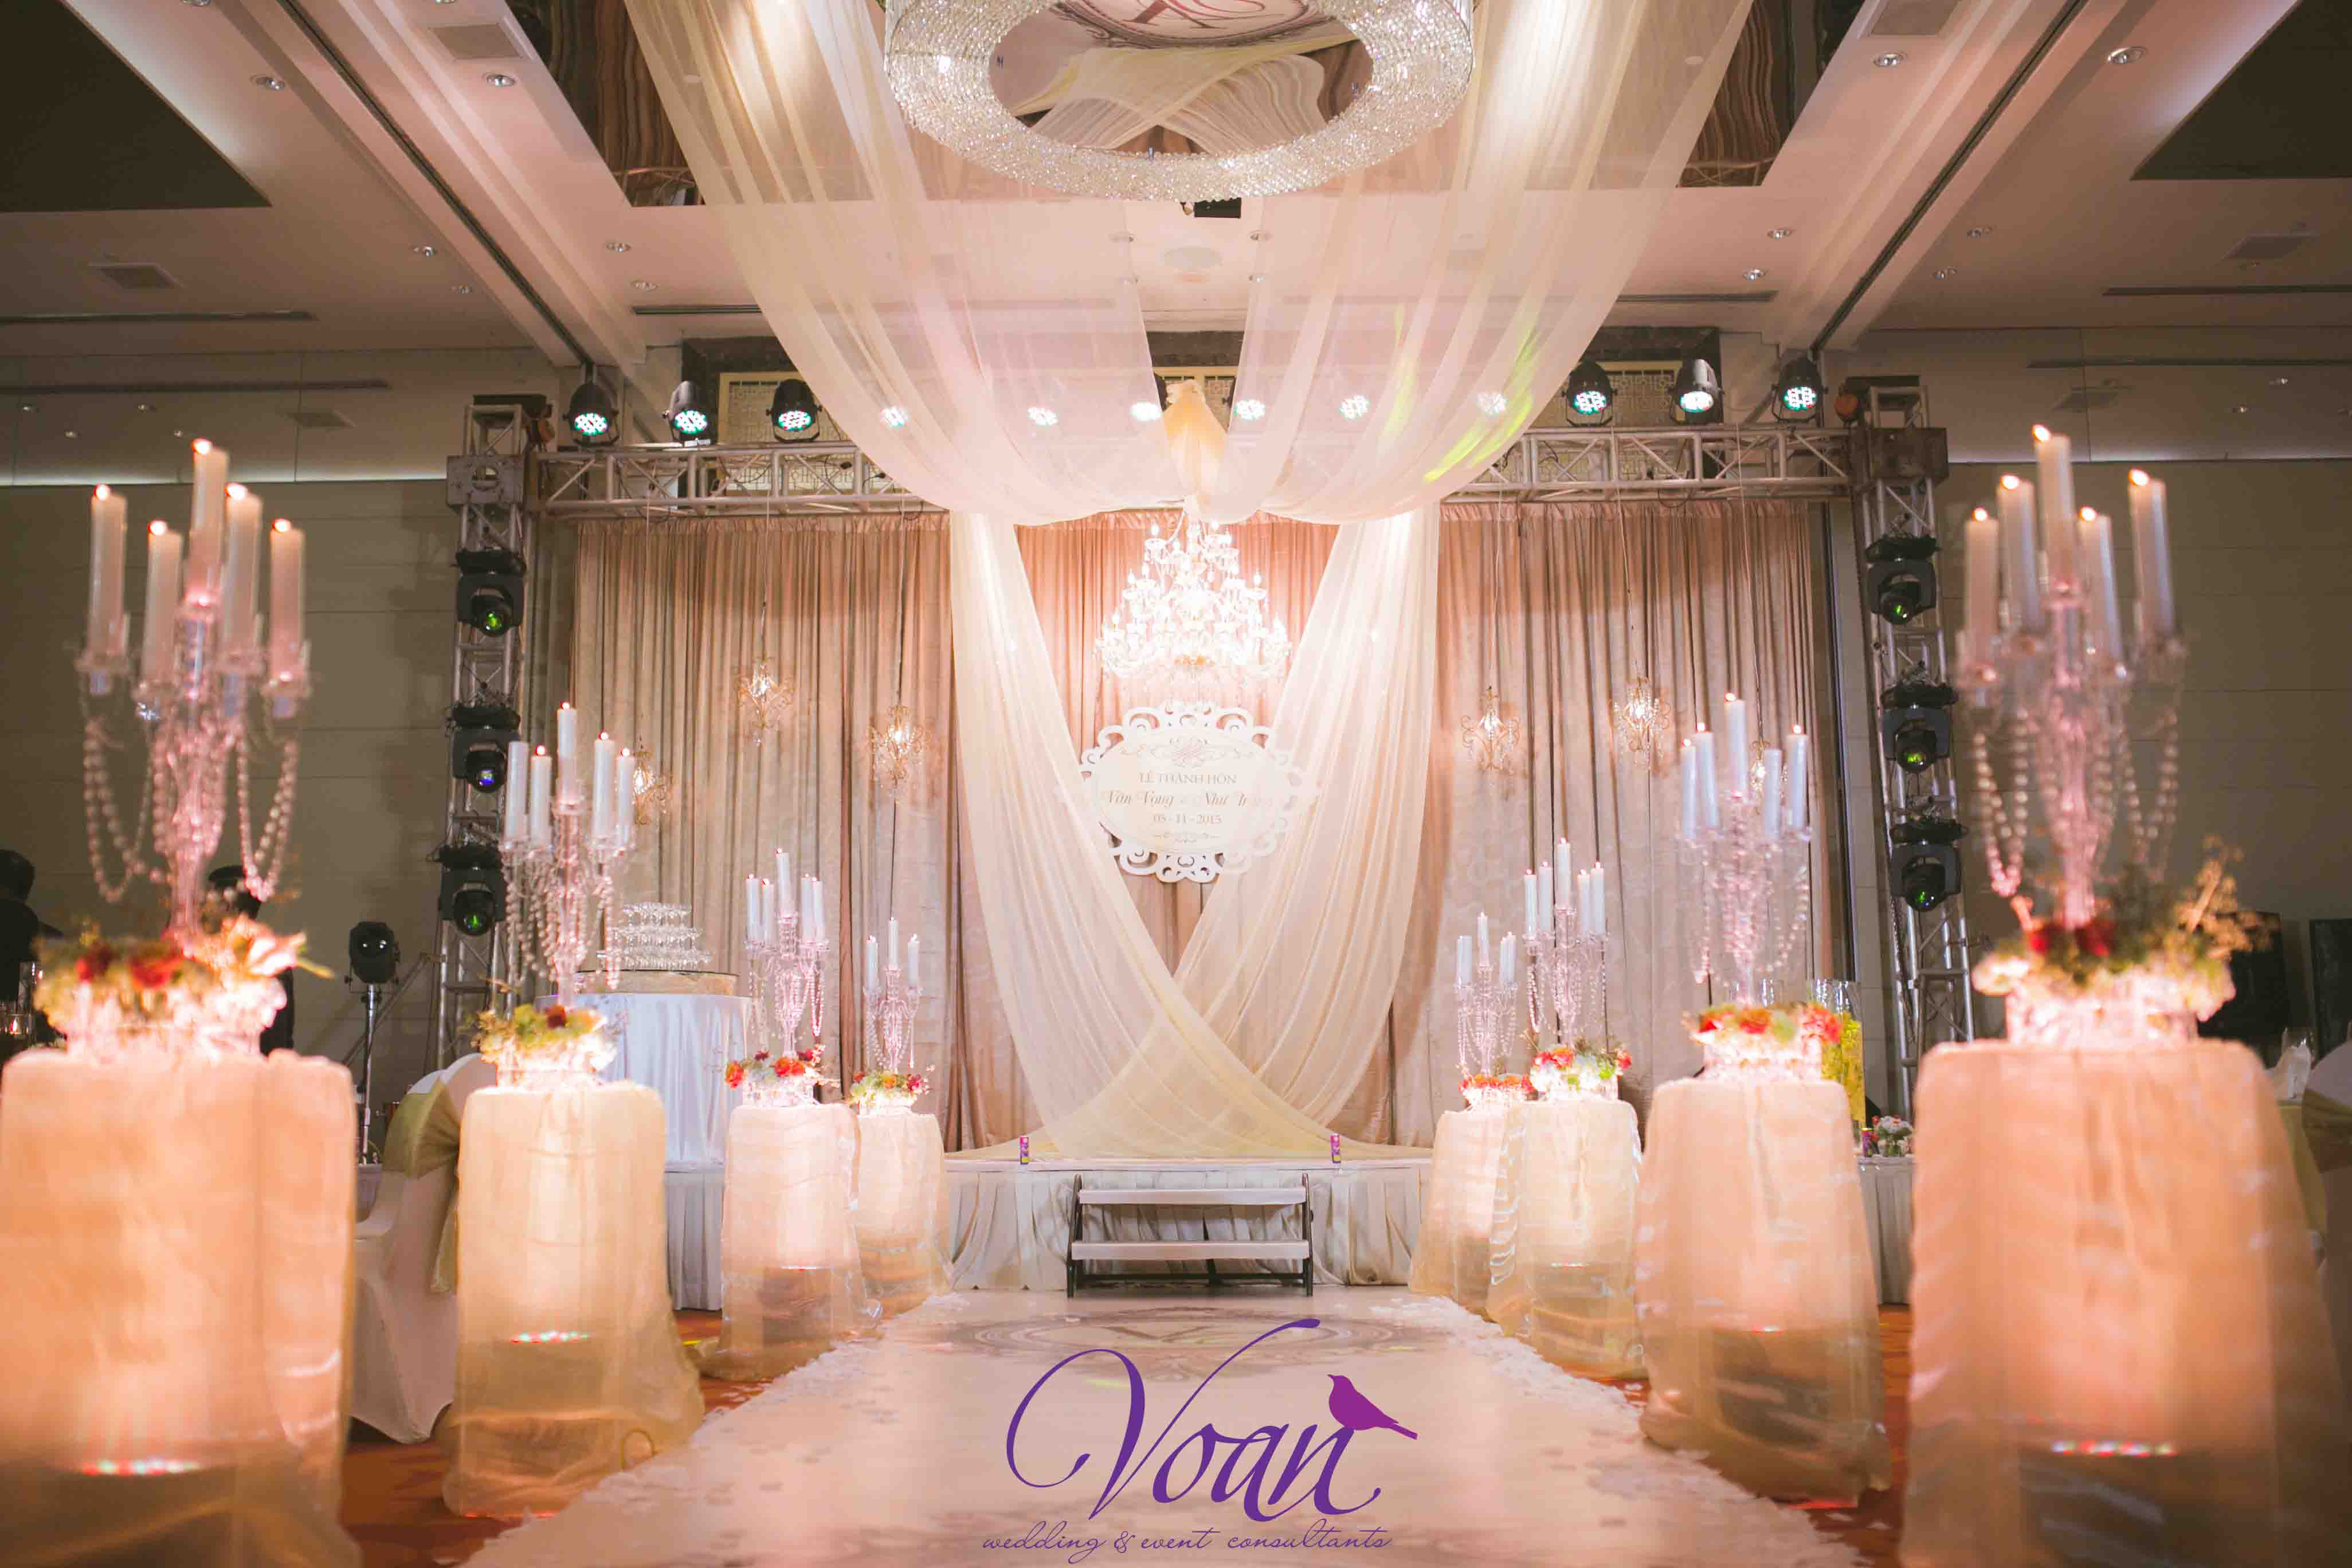 Voan wedding planner